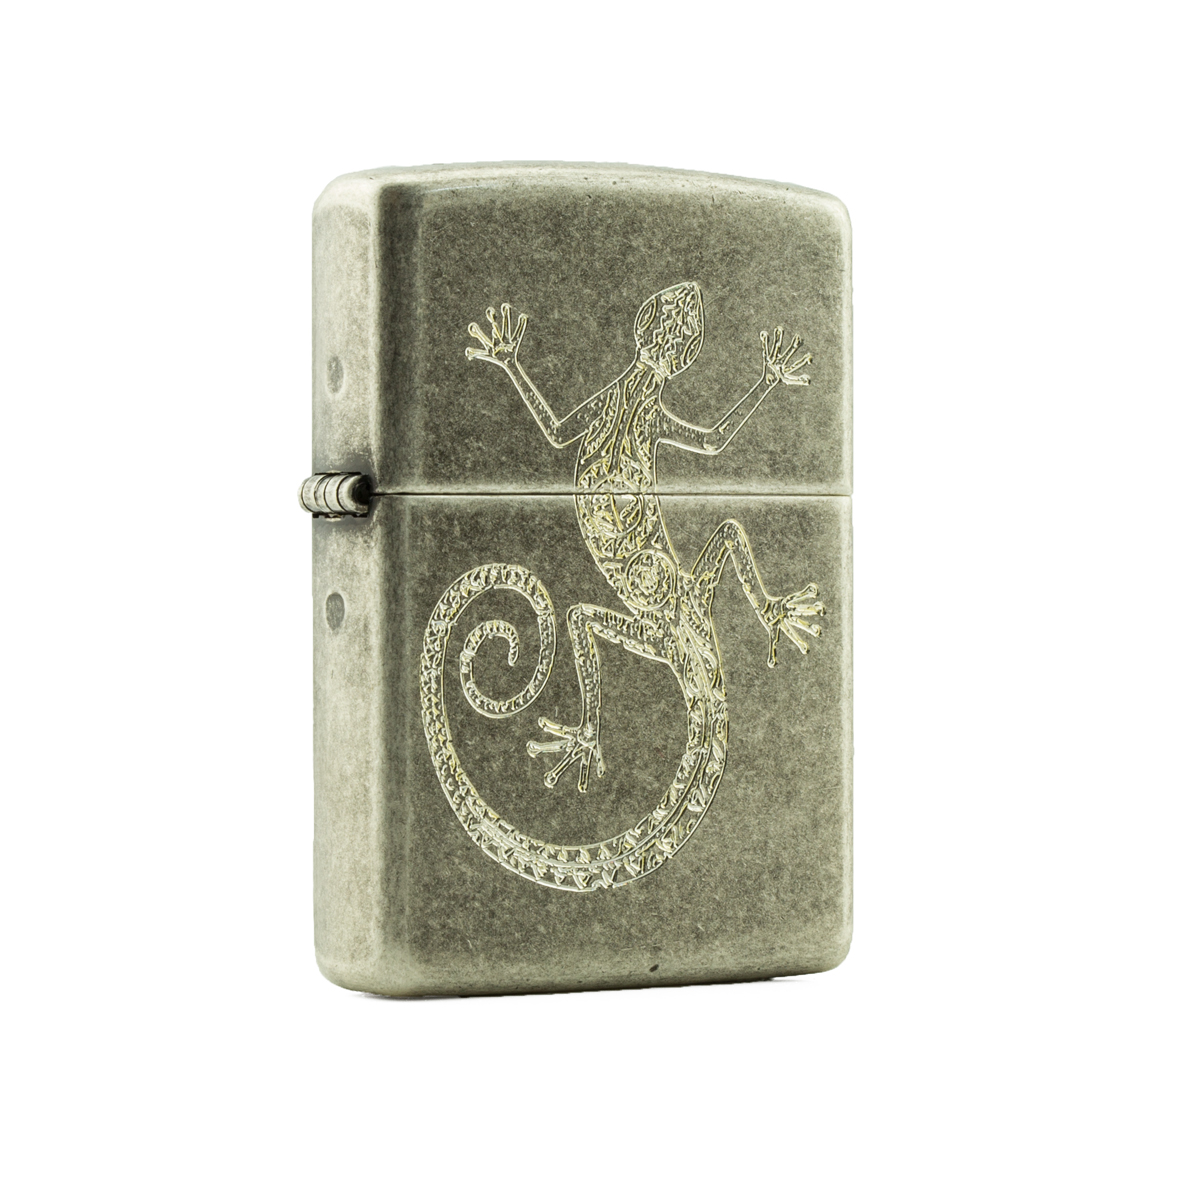 zippo-bac-co-antique-khac-hoa-van-than-lan-1